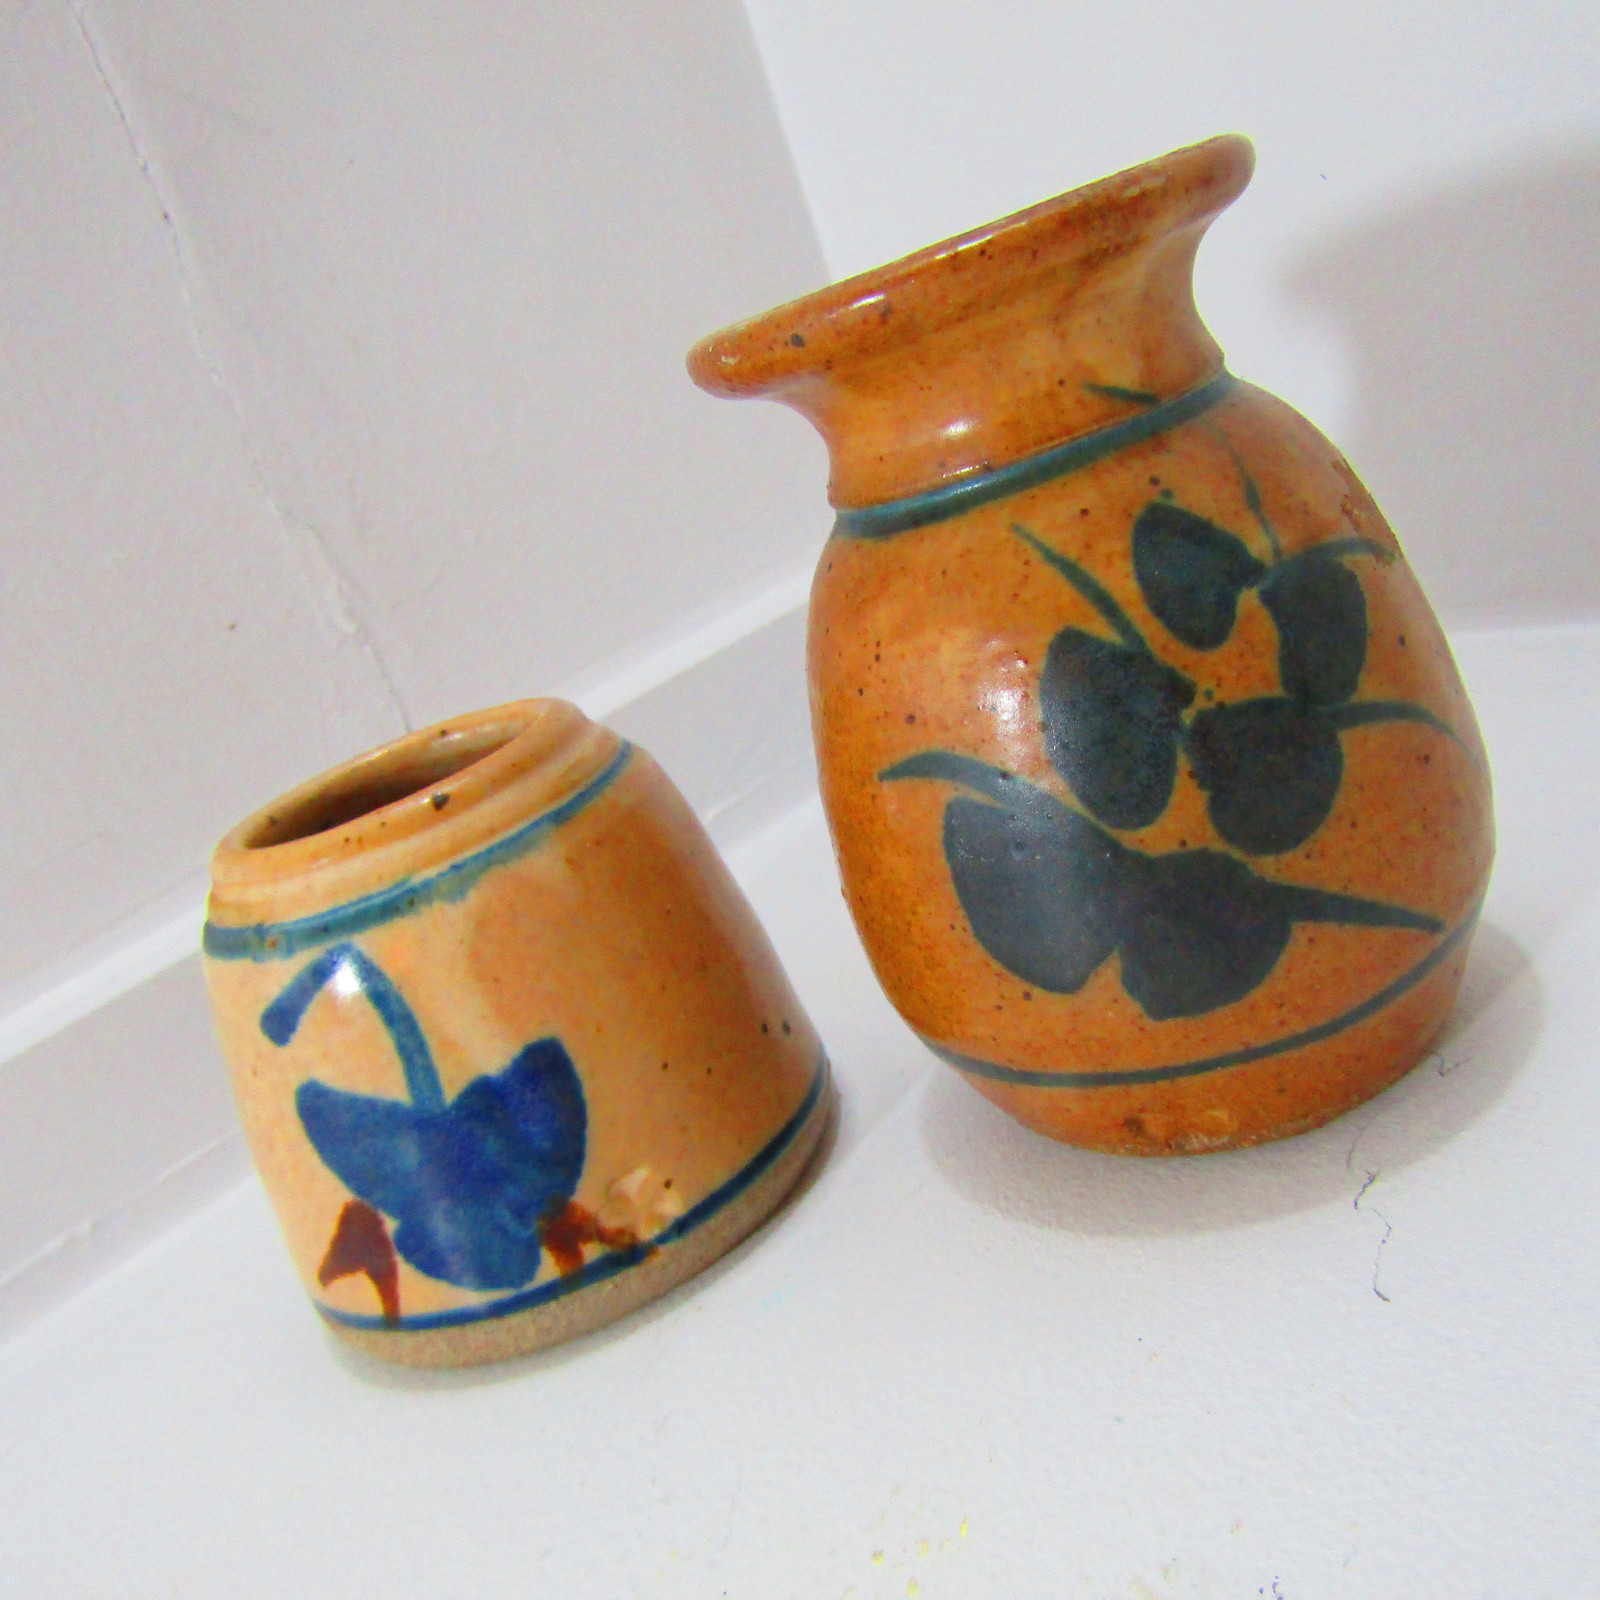 Primary image for Shamrock Imprinted Vase and Apothecary Stoneware